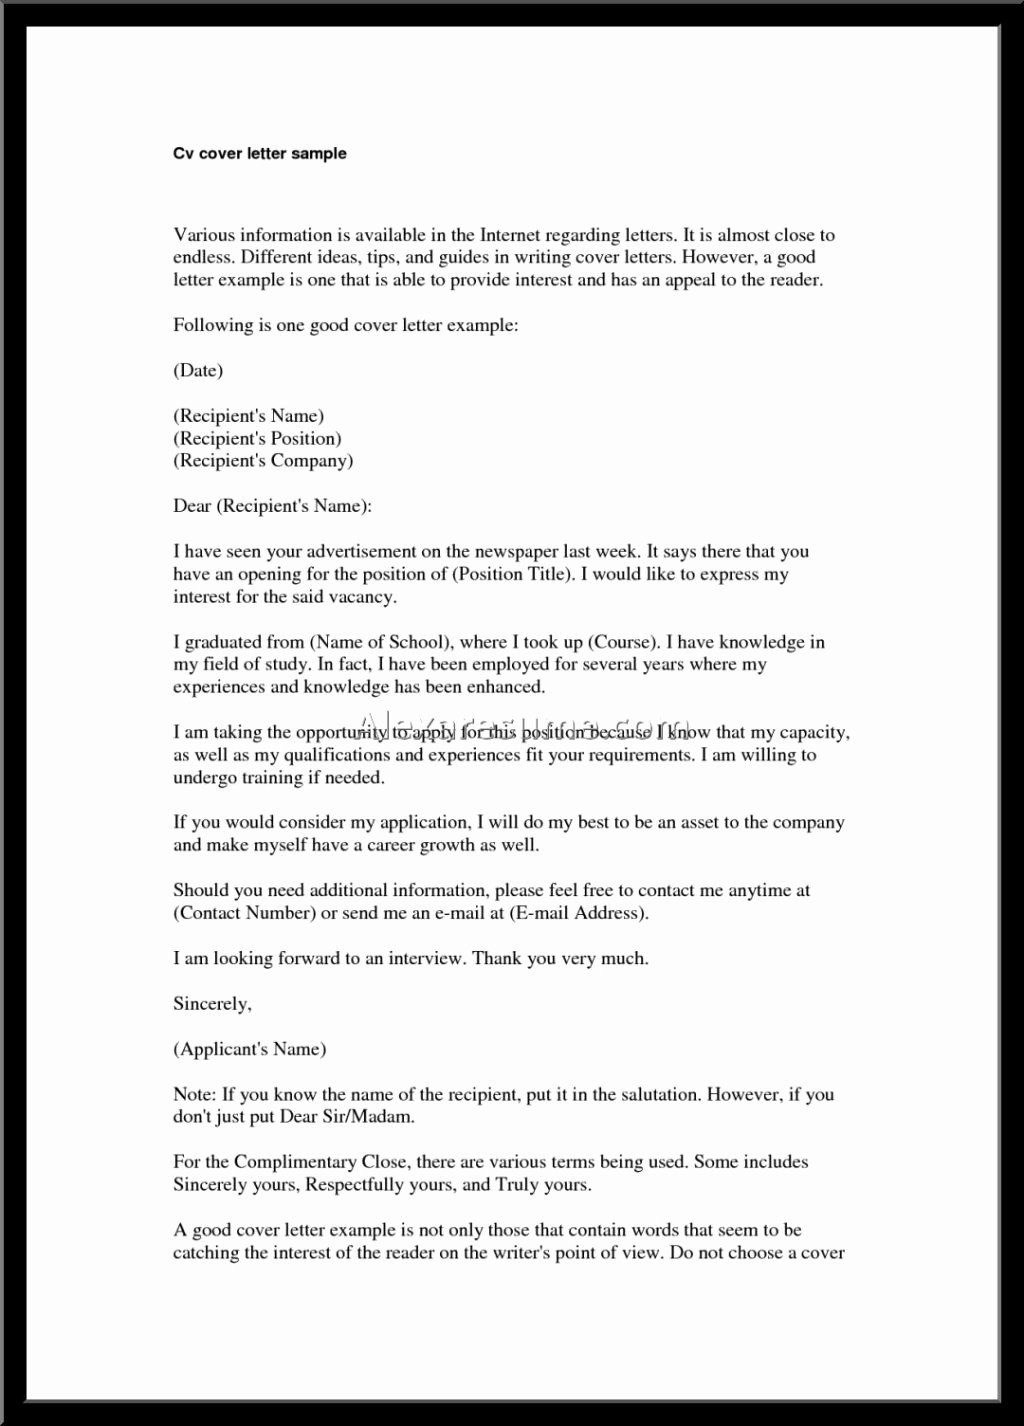 Resume and Cover Letter format Lovely Best Good Cover Letter for Resume – Letter format Writing